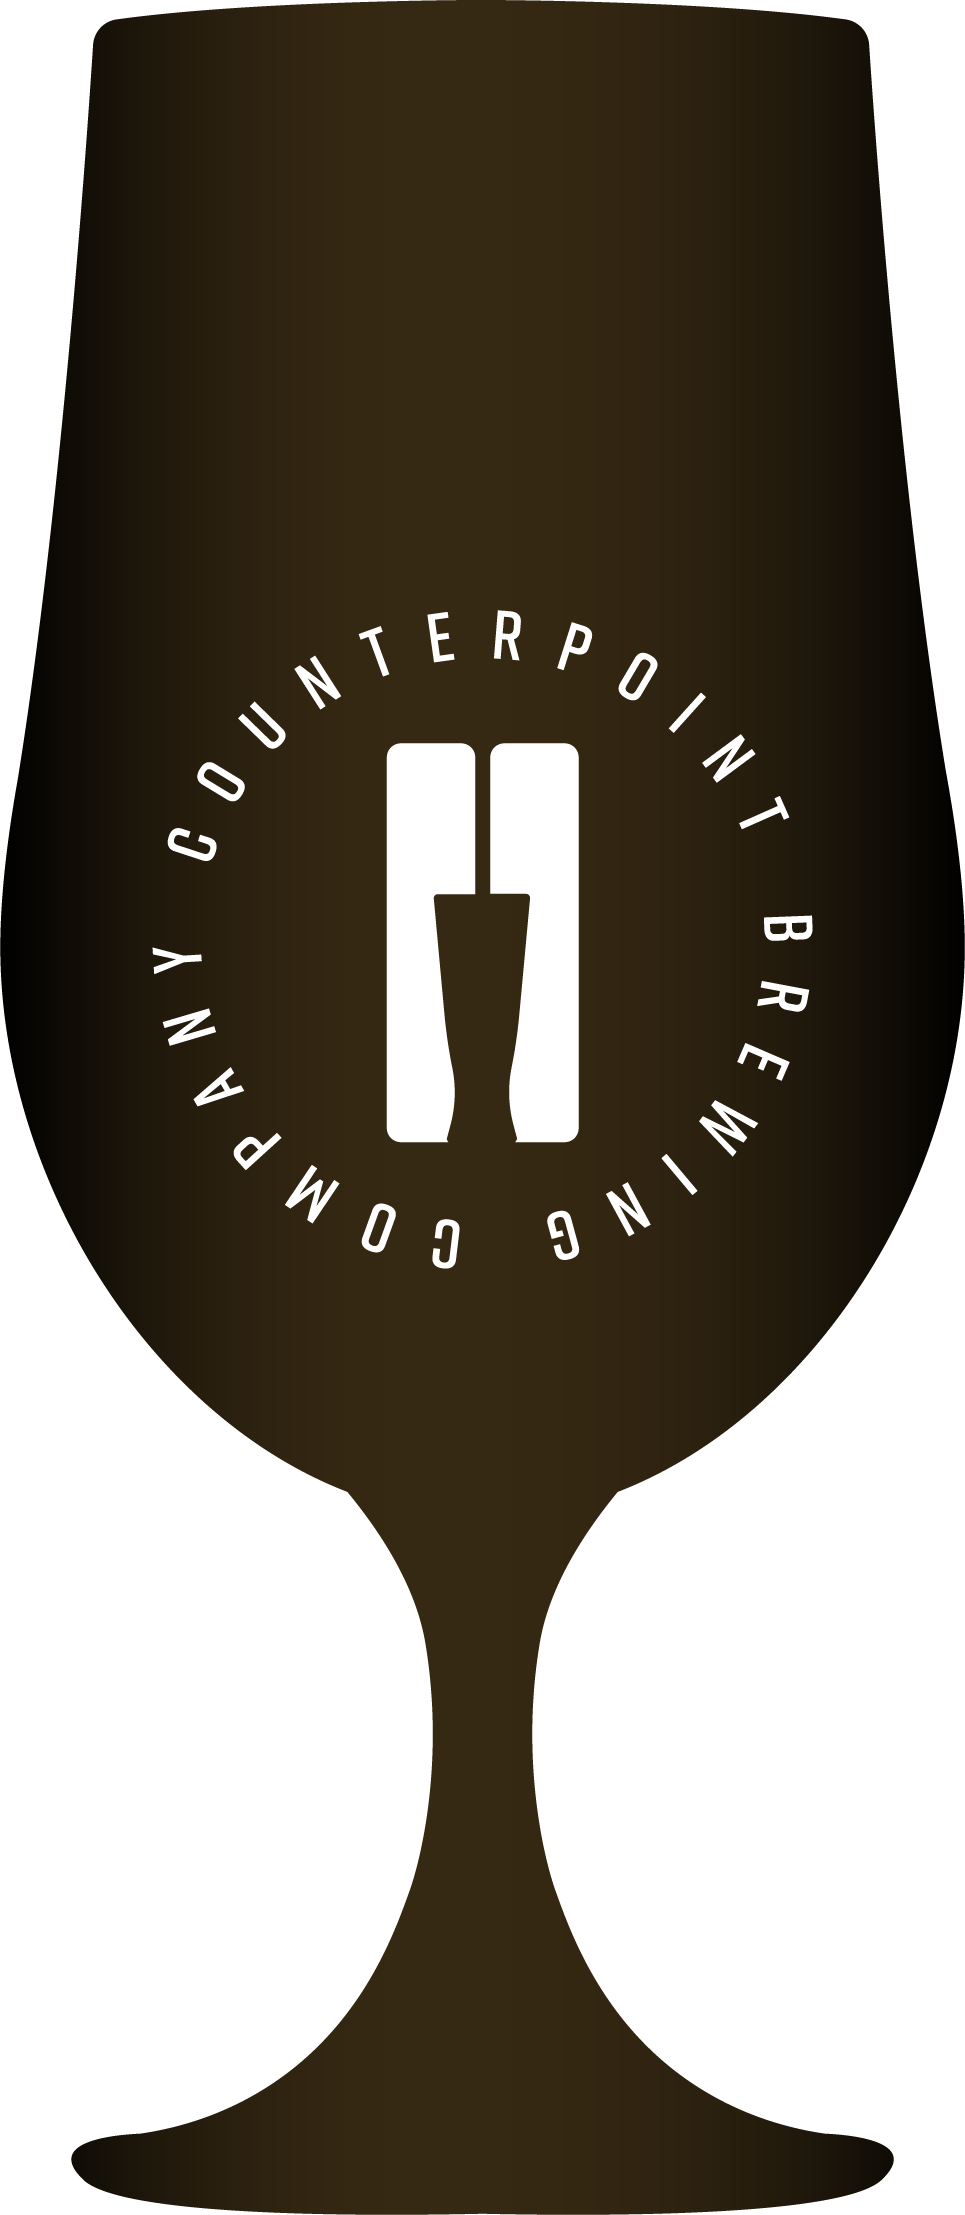 Icon shaped like a beer glass, demonstrating beer colour - black